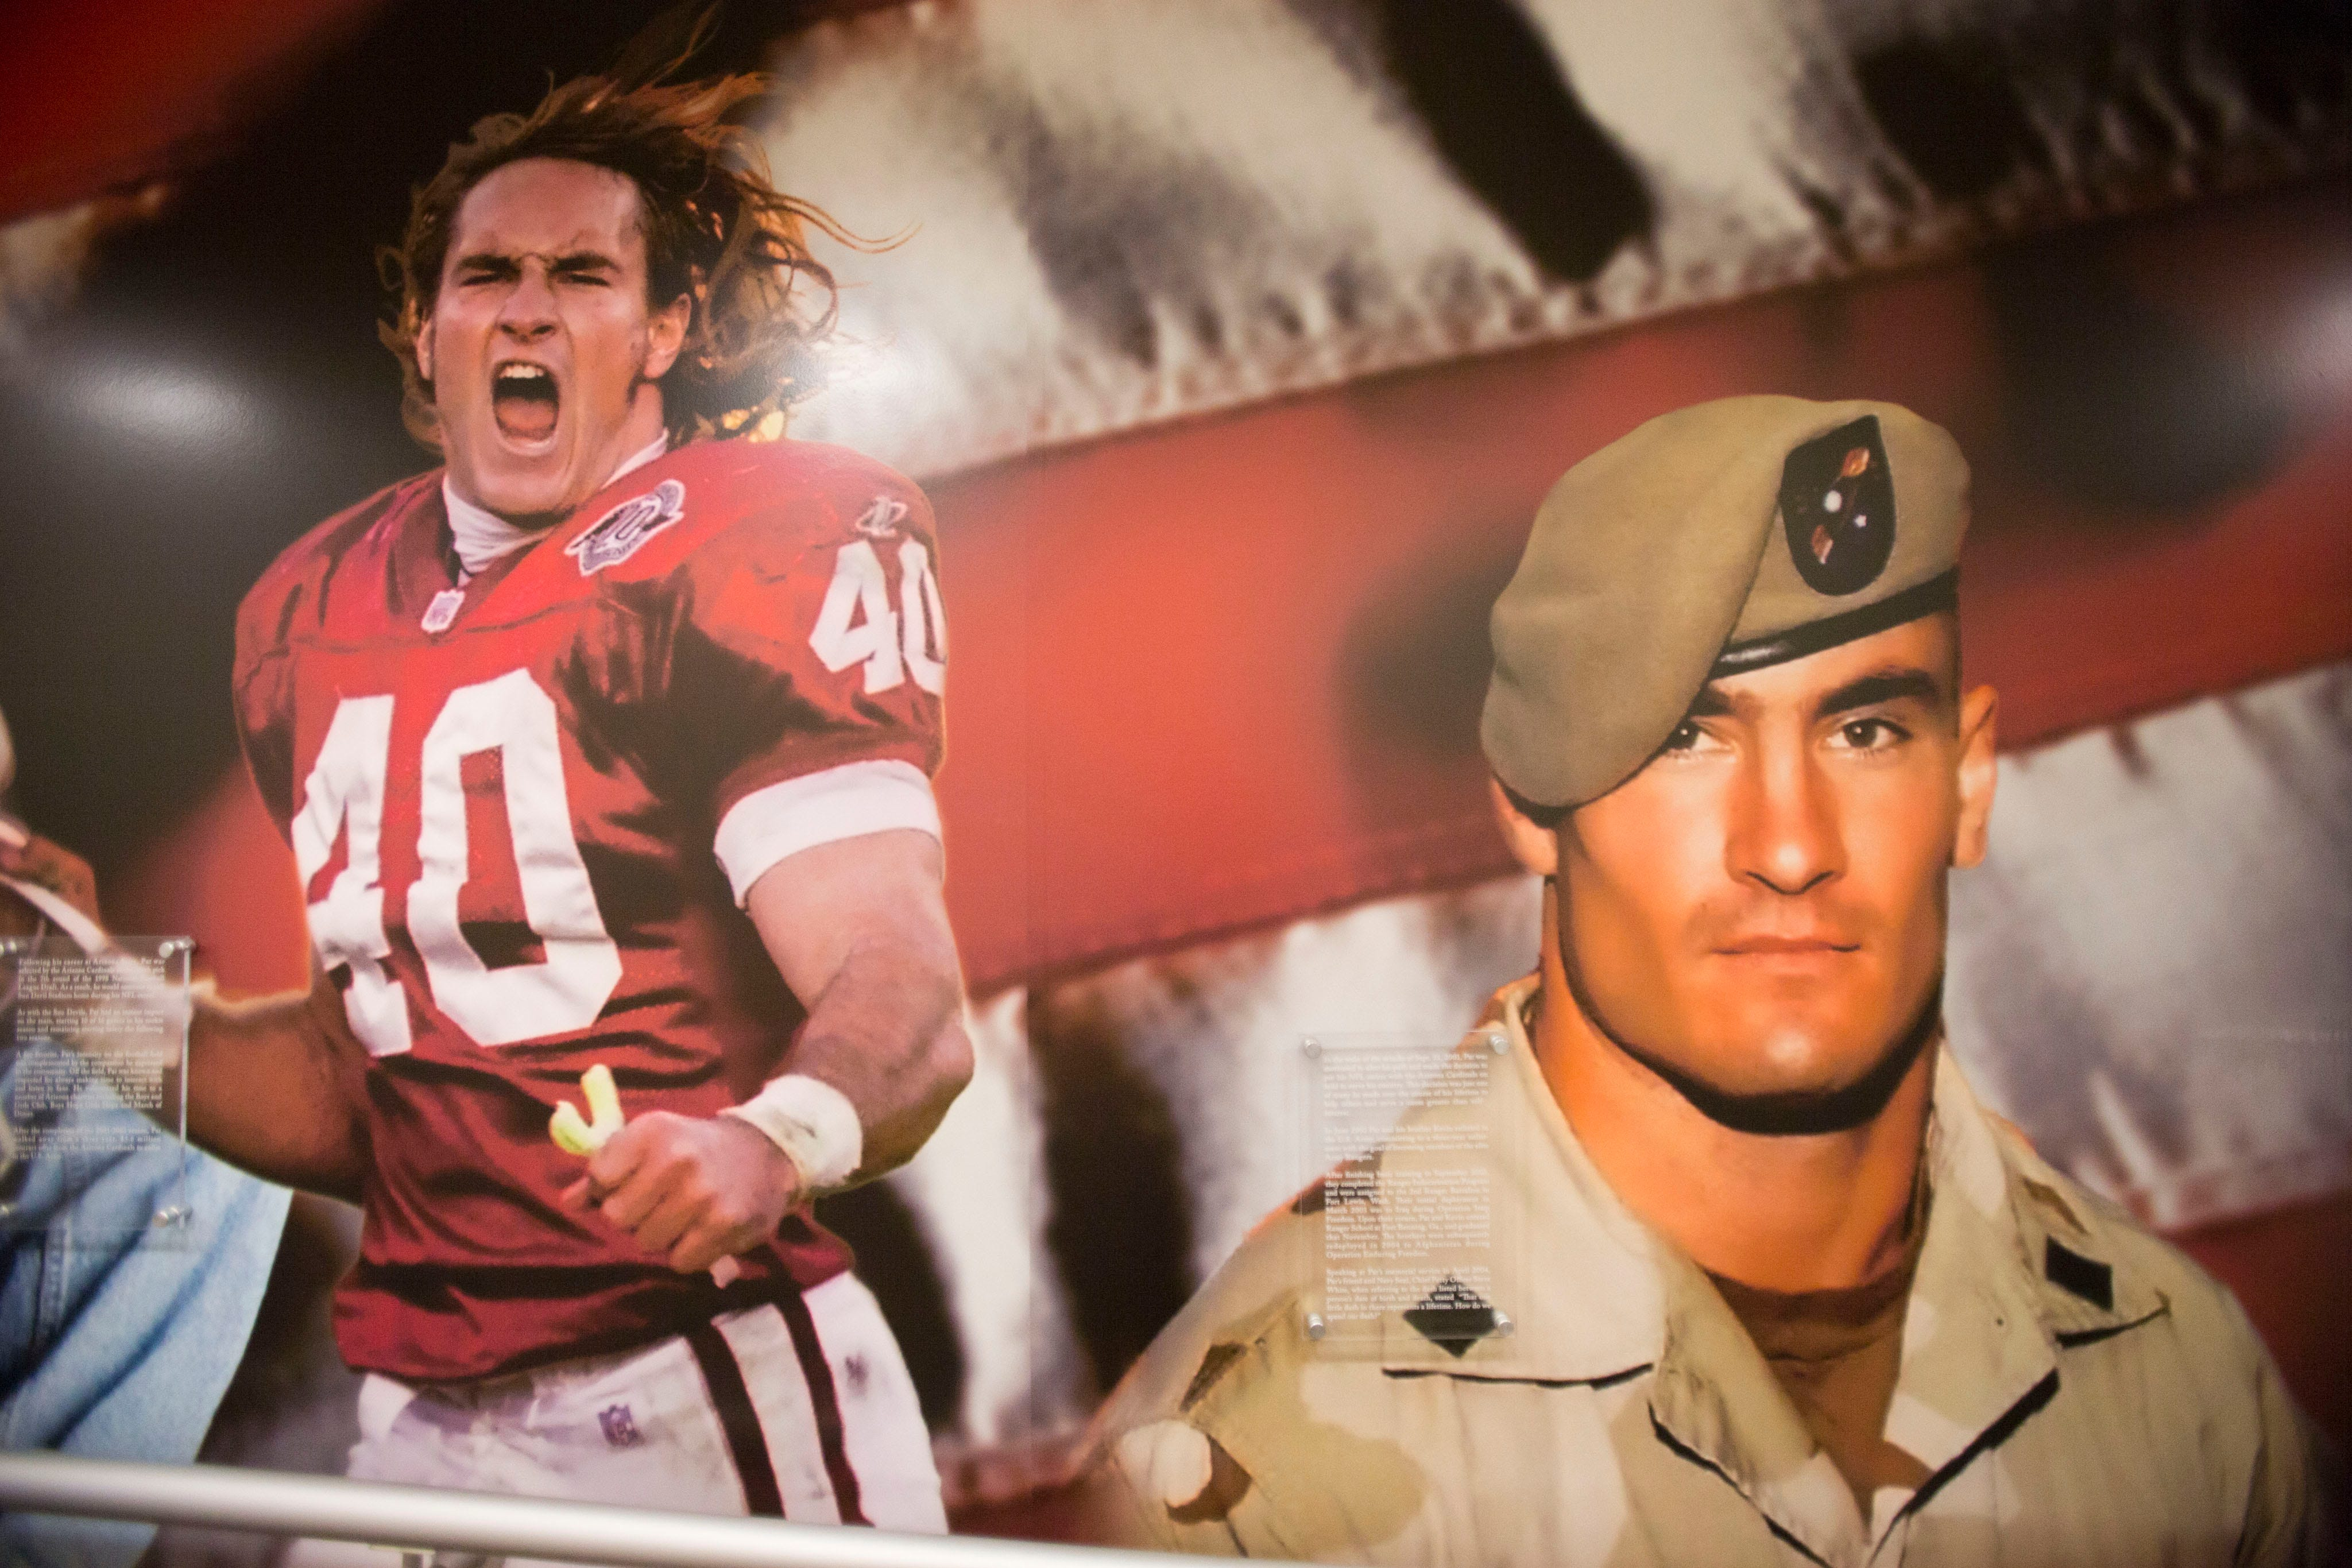 Pat Tillman becomes focus of social media outrage over Colin Kaepernick's Nike campaign